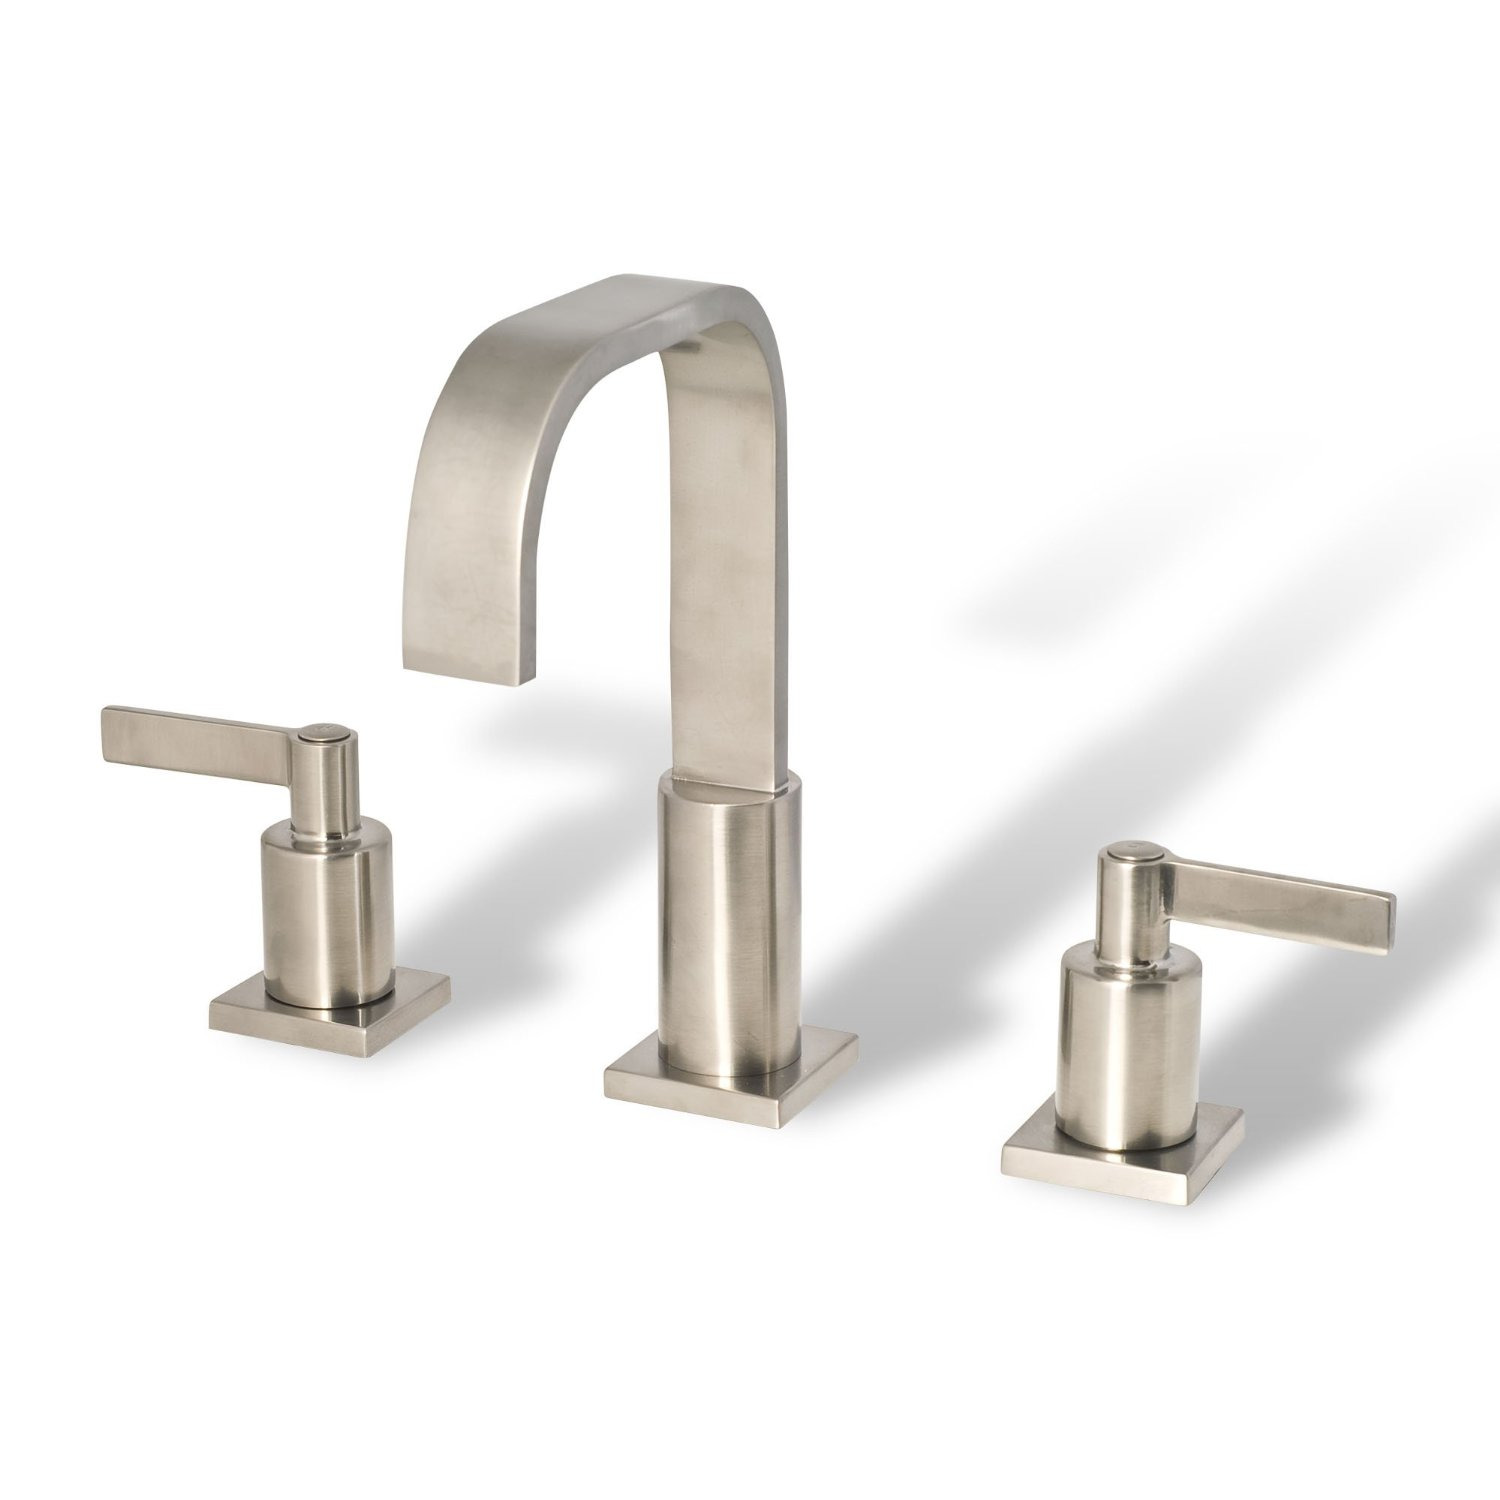 Brushed Nickel Faucet Bathroom : Bathroom Vanity Sink Widespread Lavatory Faucet Brushed Nickel cUPC ...